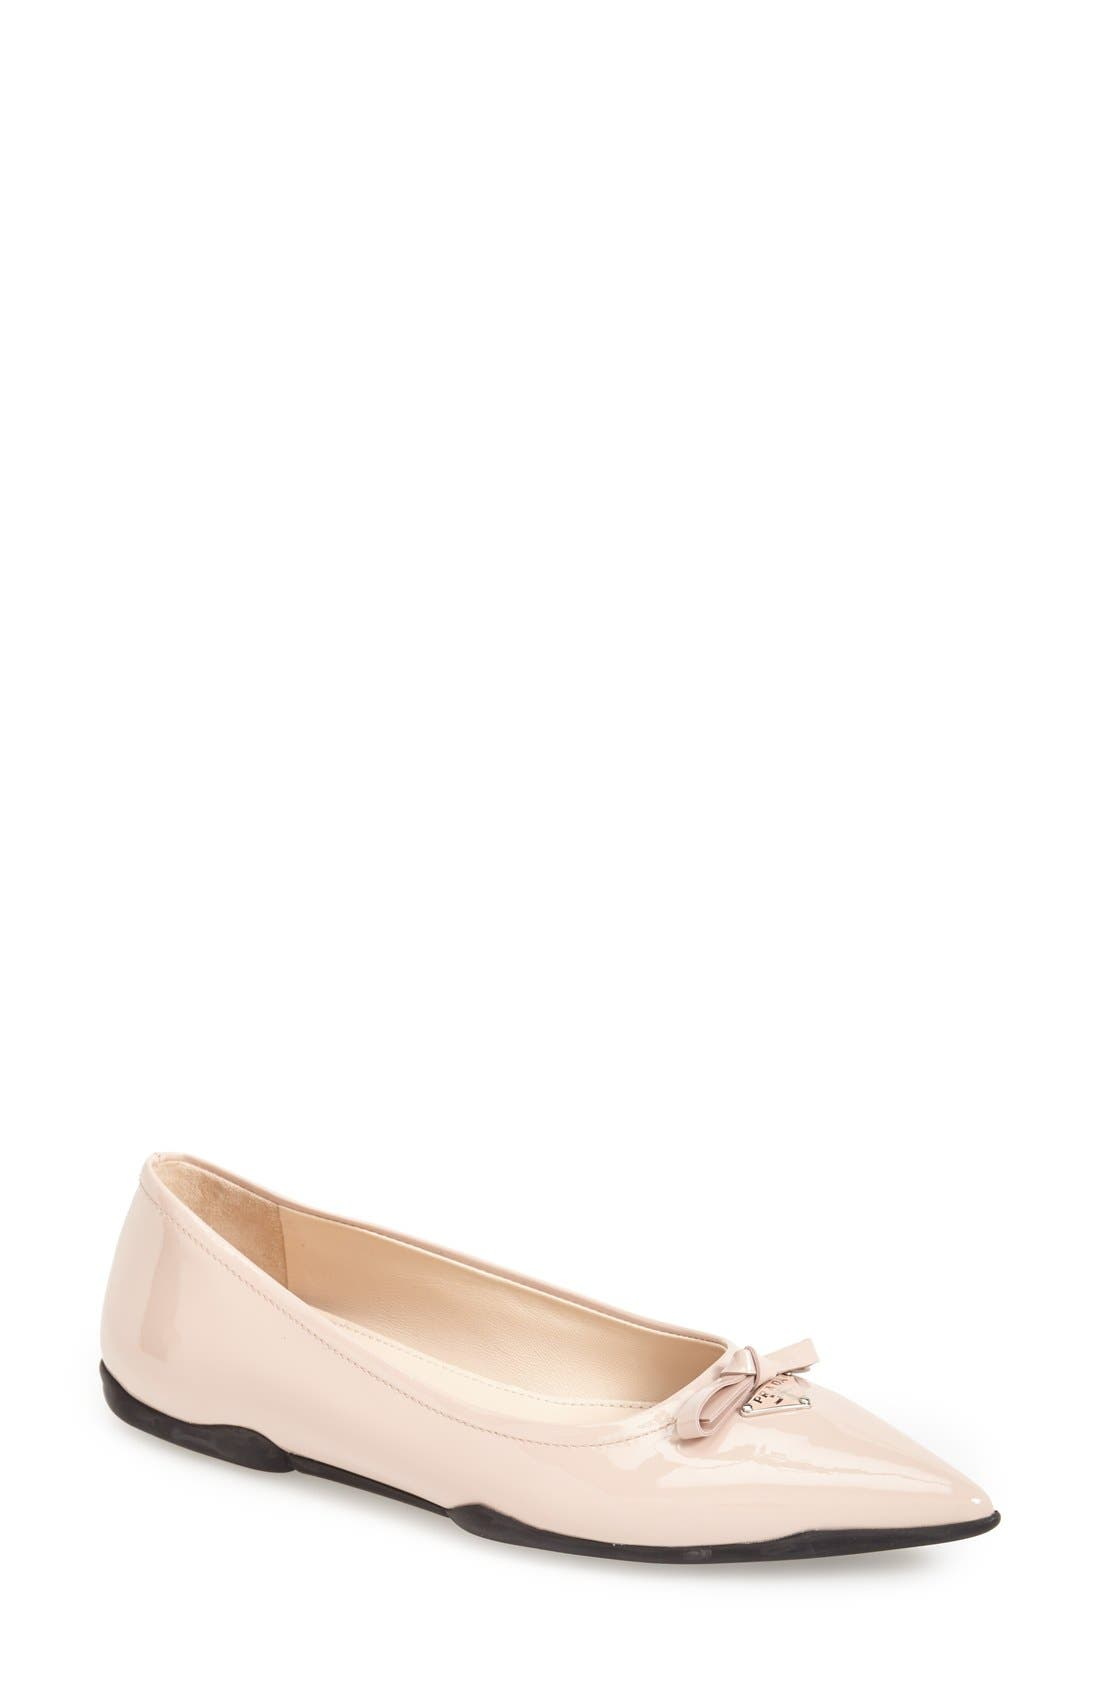 Main Image - Prada Pointy Toe Flat (Women)